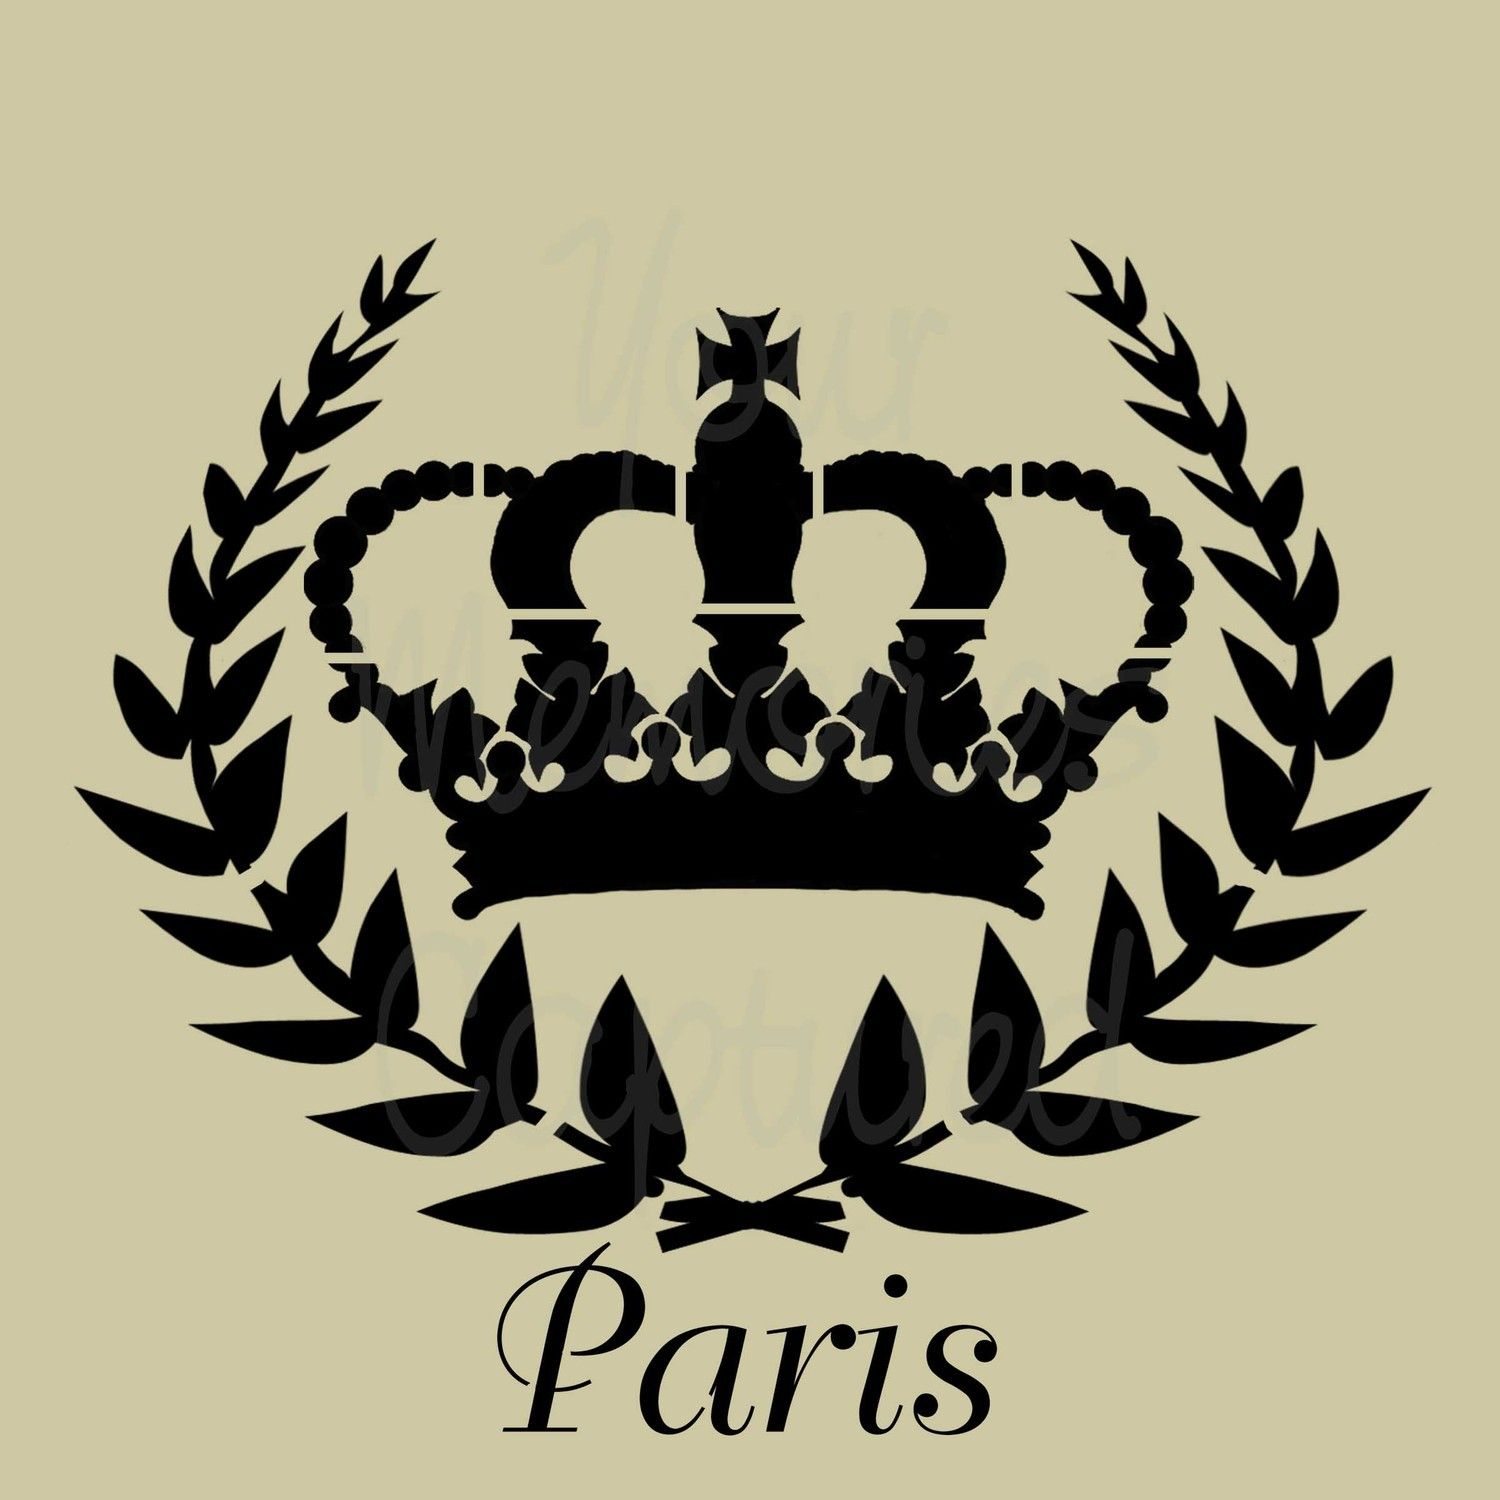 paris stencils paris crown shabby chic reusable stencil for fabric wood paper french. Black Bedroom Furniture Sets. Home Design Ideas